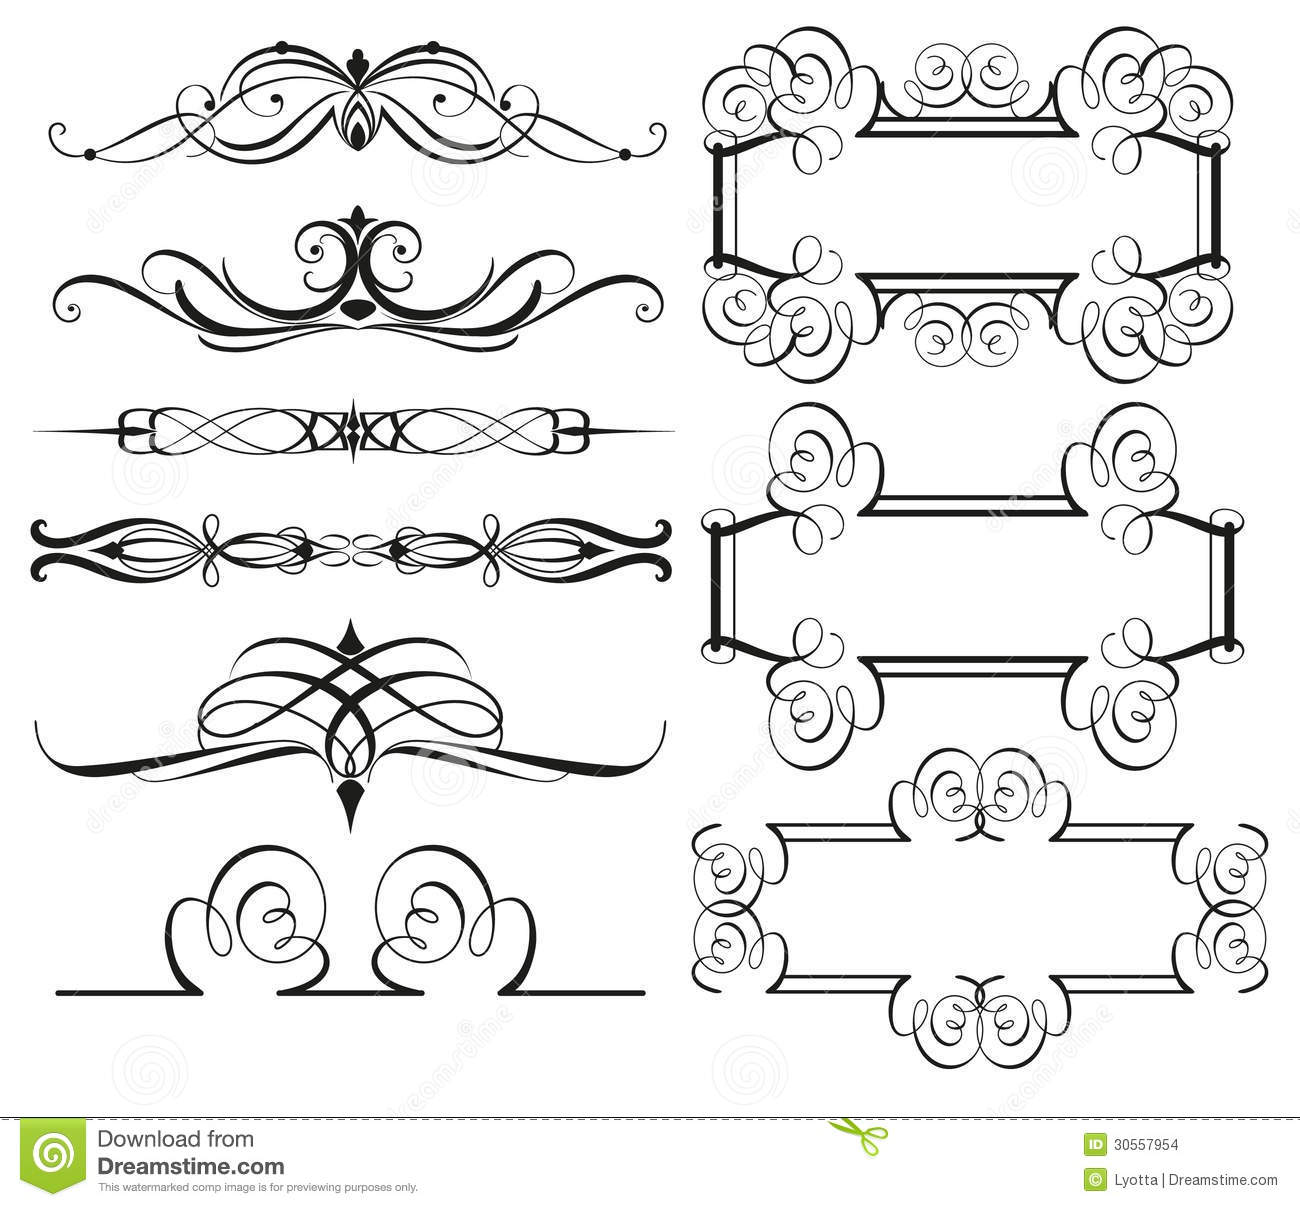 Vintage frame borders and dividers stock vector for Small vintage style picture frames